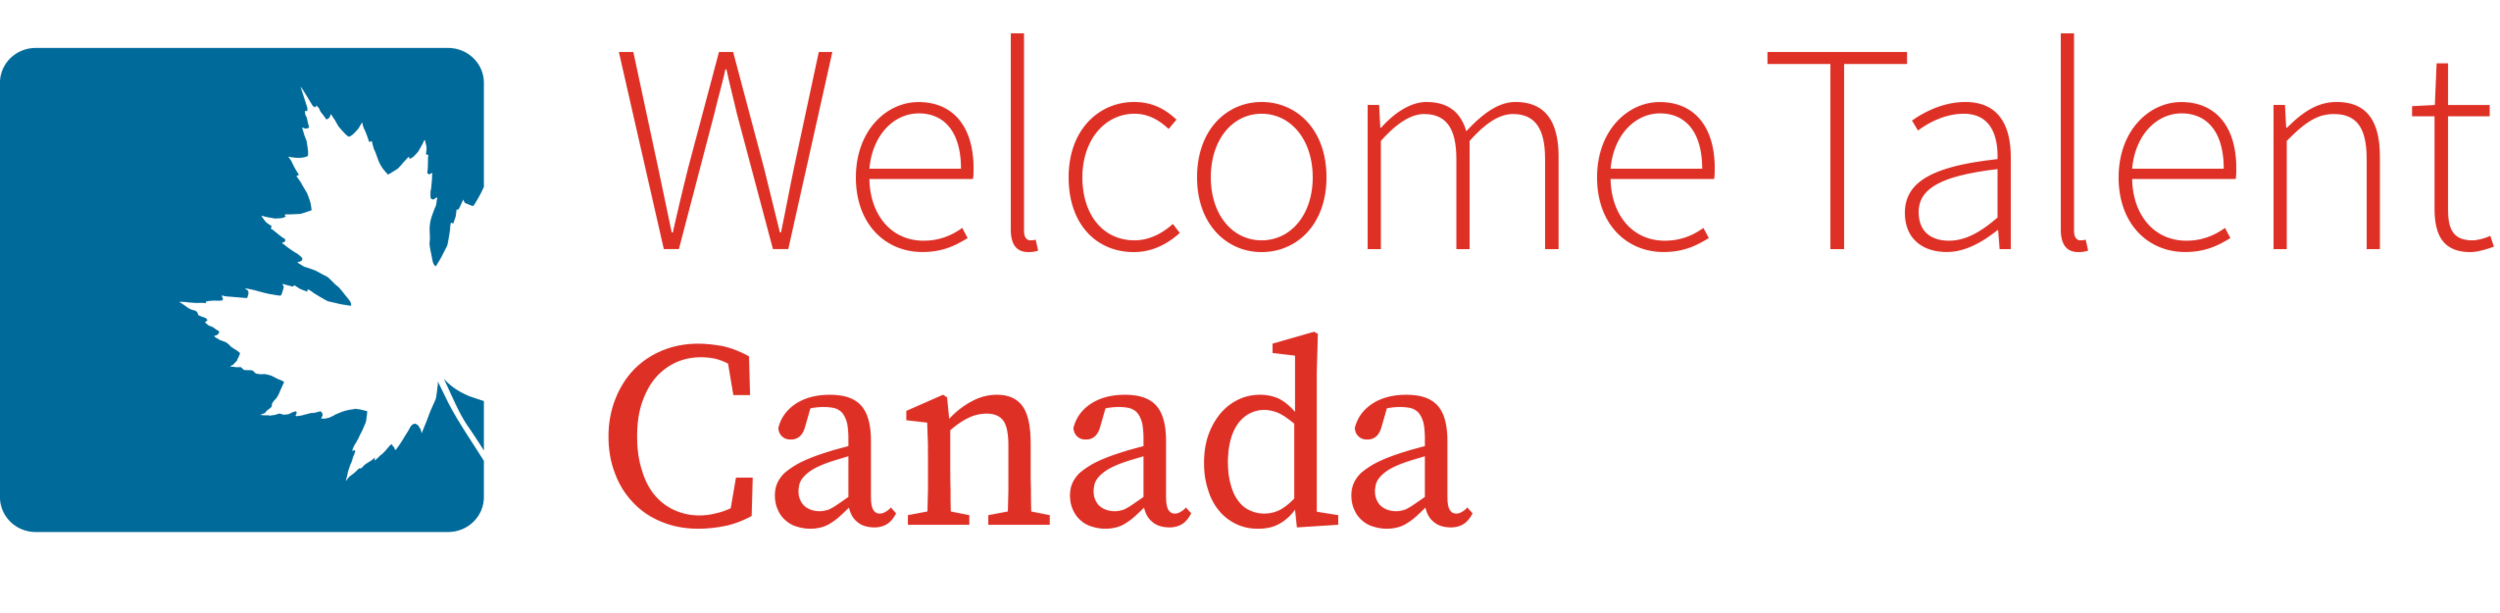 Welcome Talent Canada Logo copy.png